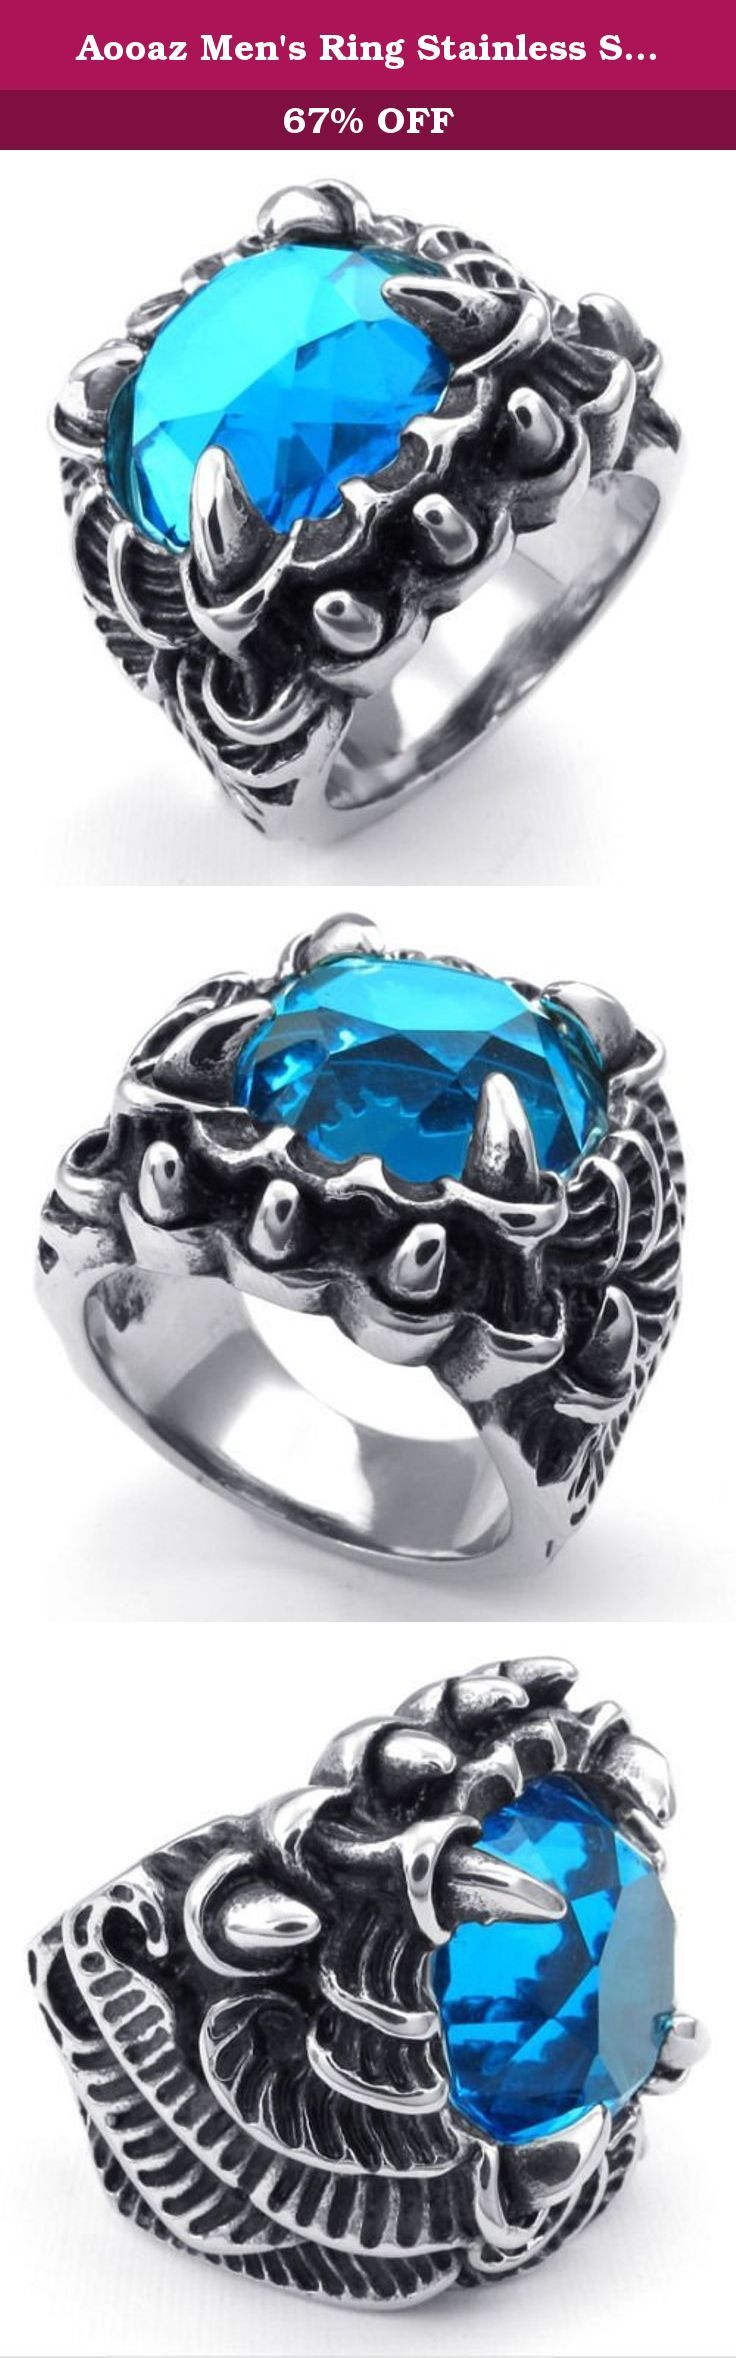 Aooaz Men's Ring Stainless Steel Ring Silver Tone Blue CZ Monster Talon Vintage Retro Gothic Punk Rock. ♥Aooaz A is the bridge of Arch love. OO is overcome and obstruct,it means overcome the obstruct to get their favorite. A is abiding the same as the promise of life abiding. Z is the passion zest to keep the expectations of love.The shape of AA is like a bridge,through the across,brave to follow the heart of the most love. ♥Our products Our product is the most unique product for you and...